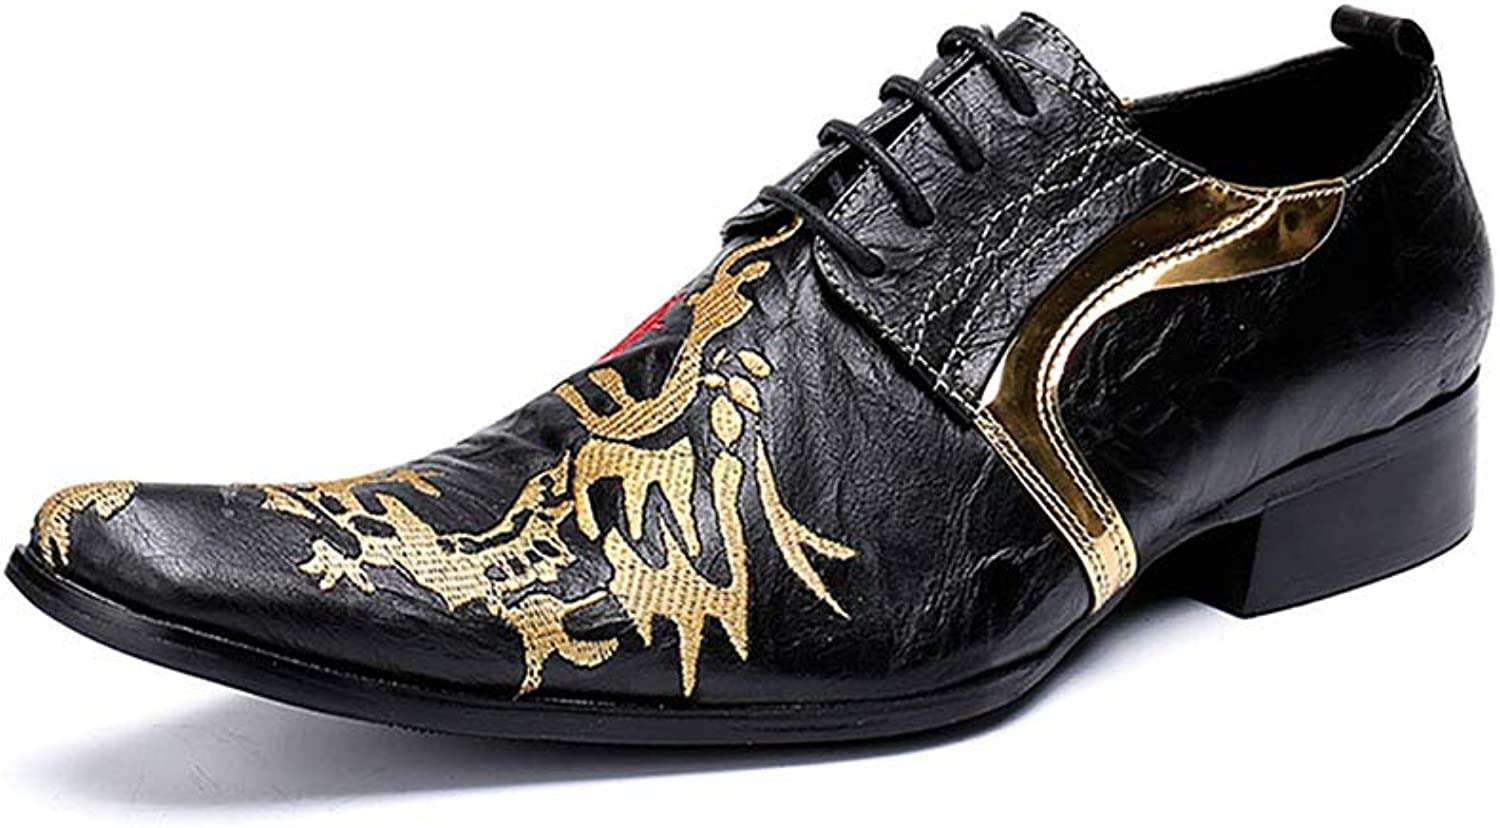 SHOES Mens Leather golden Dragon Pattern Pointed Toe Lace-Up Rock Singer Casual for Nightclub,Business,Wedding,Casual,Office,Party